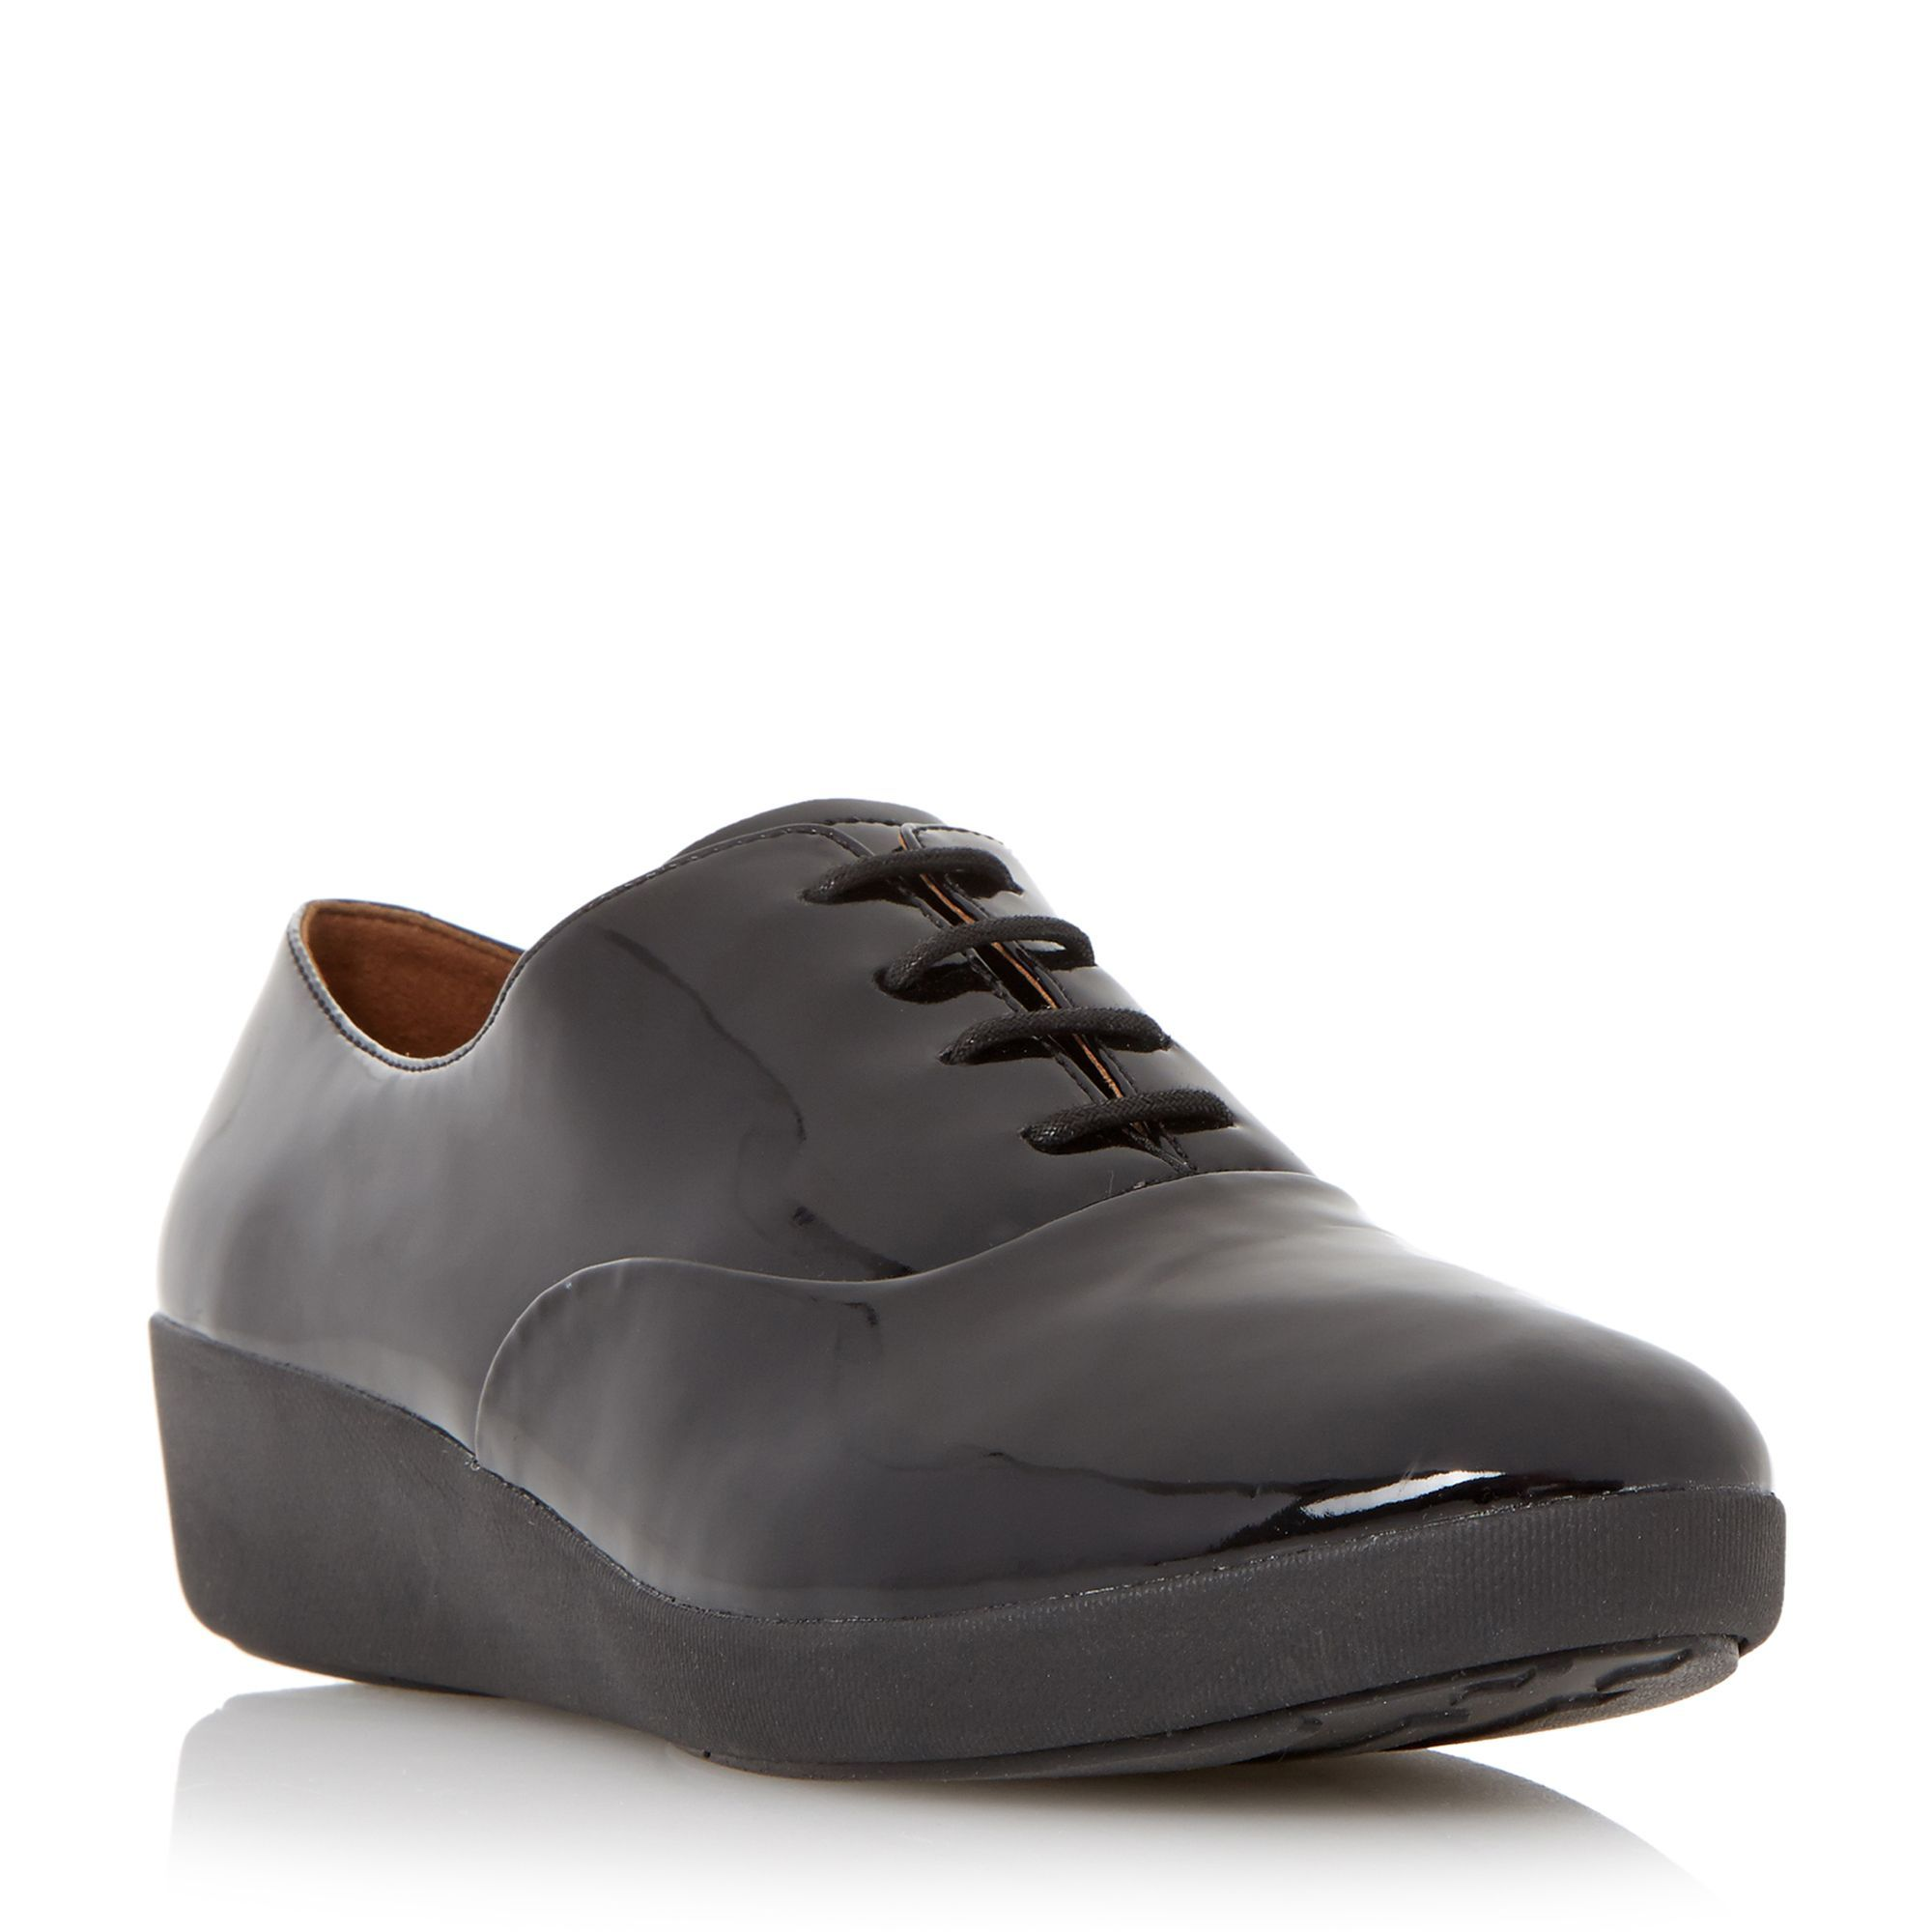 33d7c7aa77961a FitFlop F-pop oxford patent lace up oxford shoes